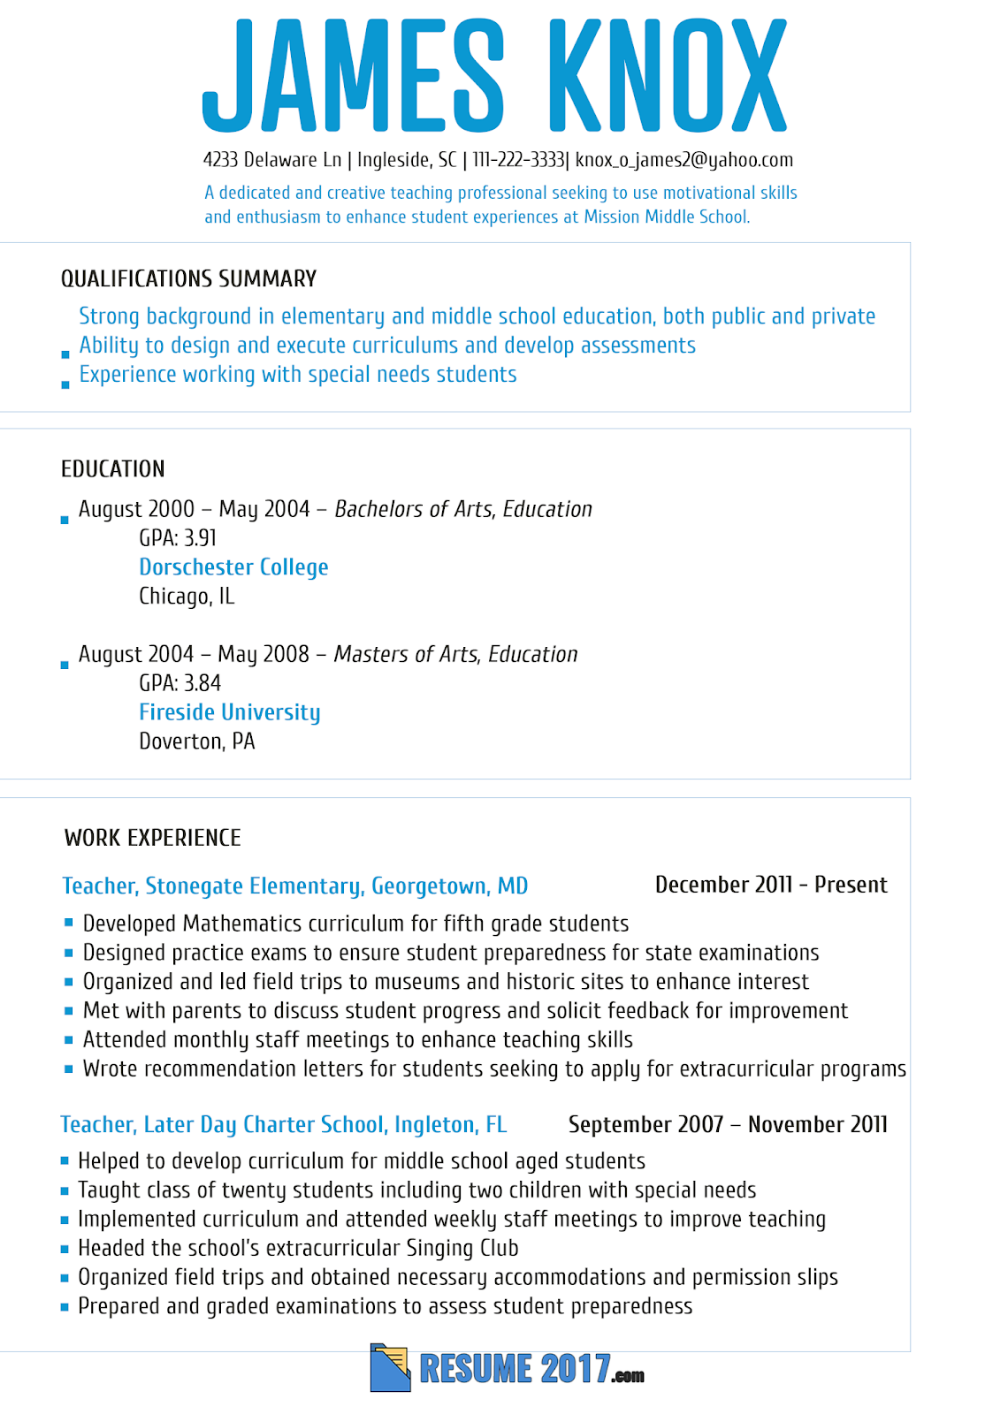 Free Resume Templates 2020 Resume Templates Word in 2020